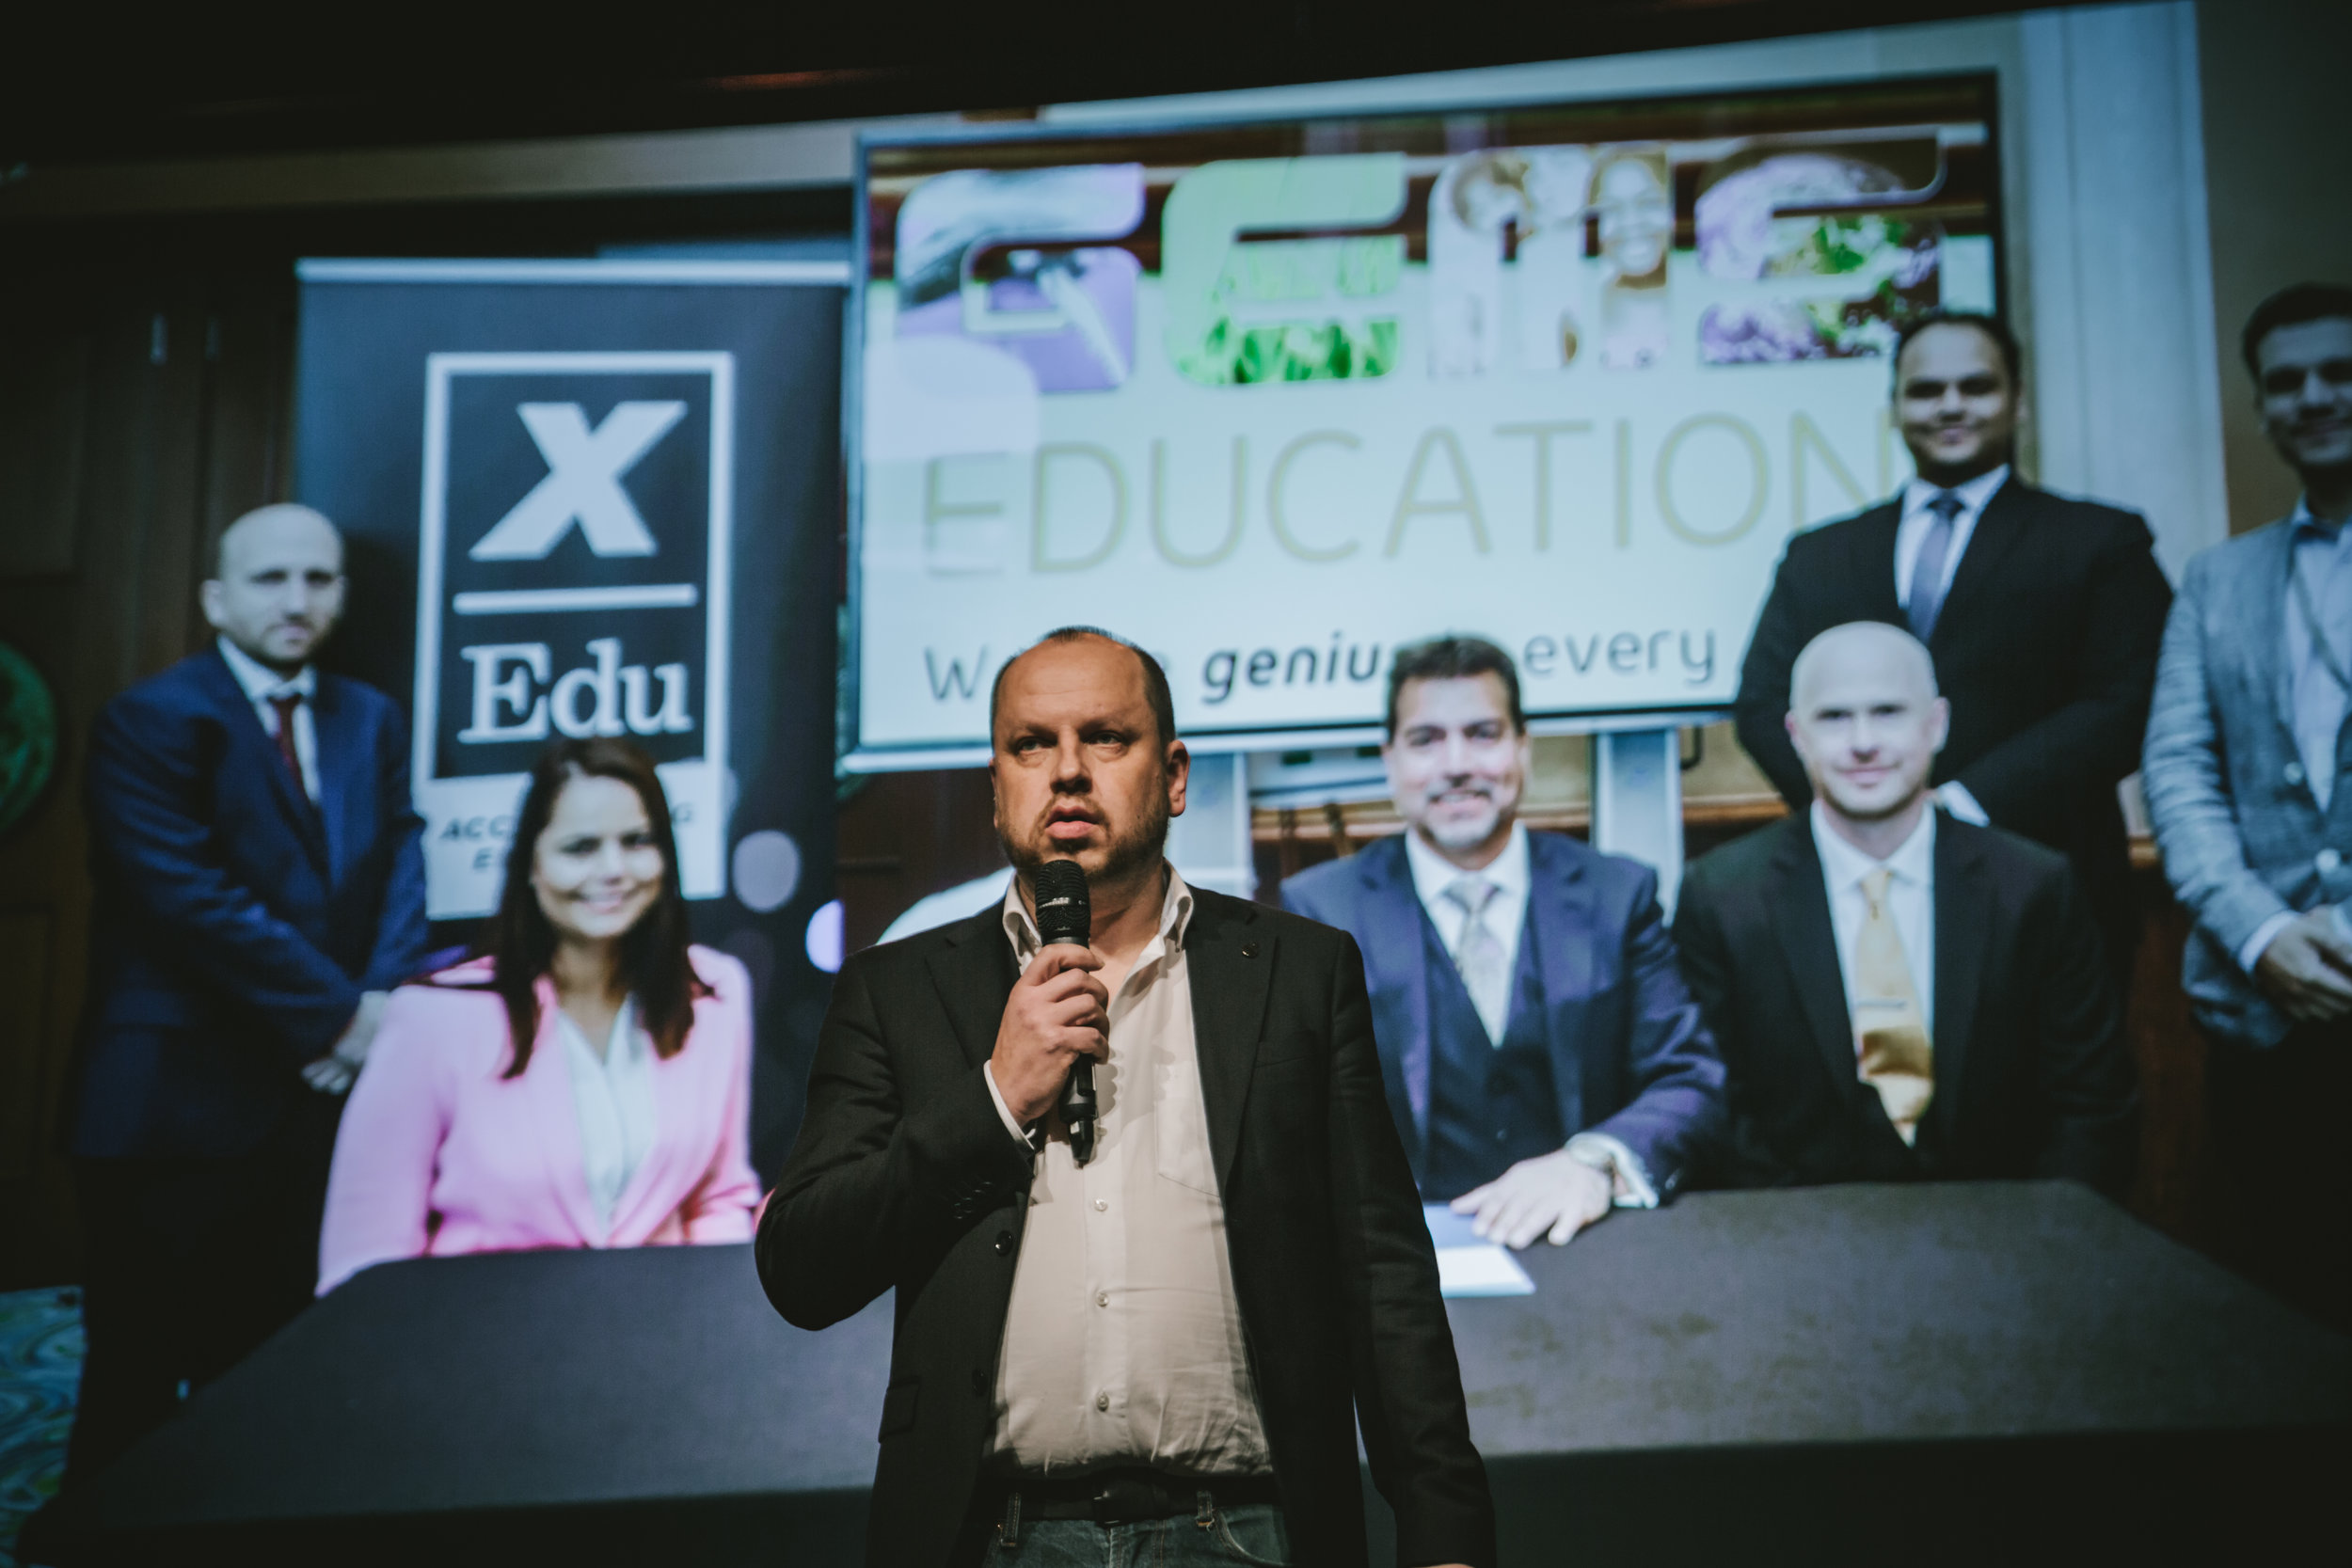 Antti Korhonen, CEO at xEdu, announcing the MoU with GemsXonline at XcitED 2018